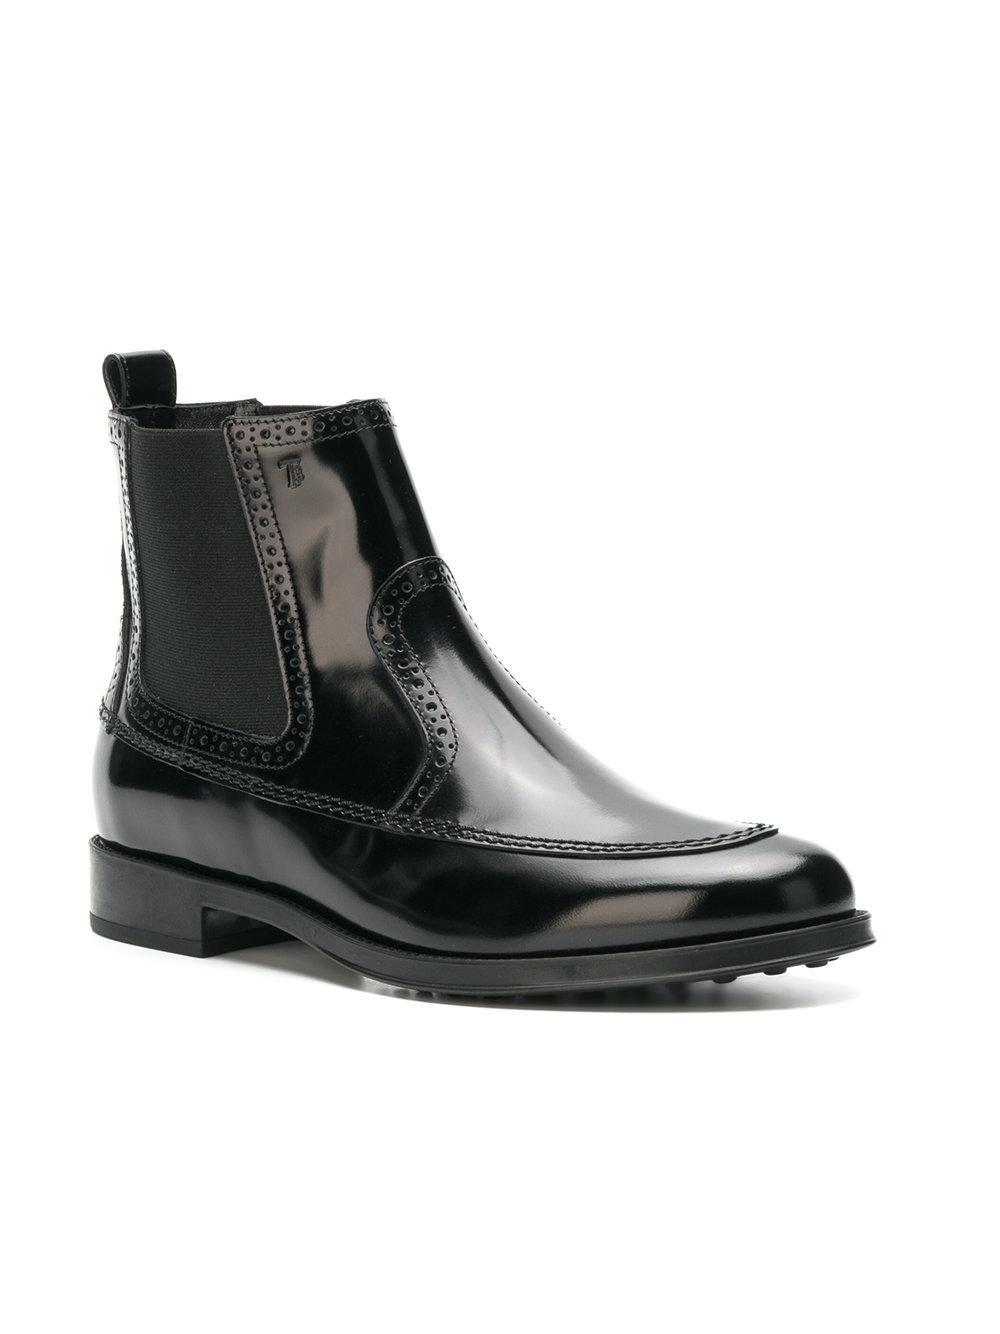 Tod's Leather Hight Ankle Boots in Black